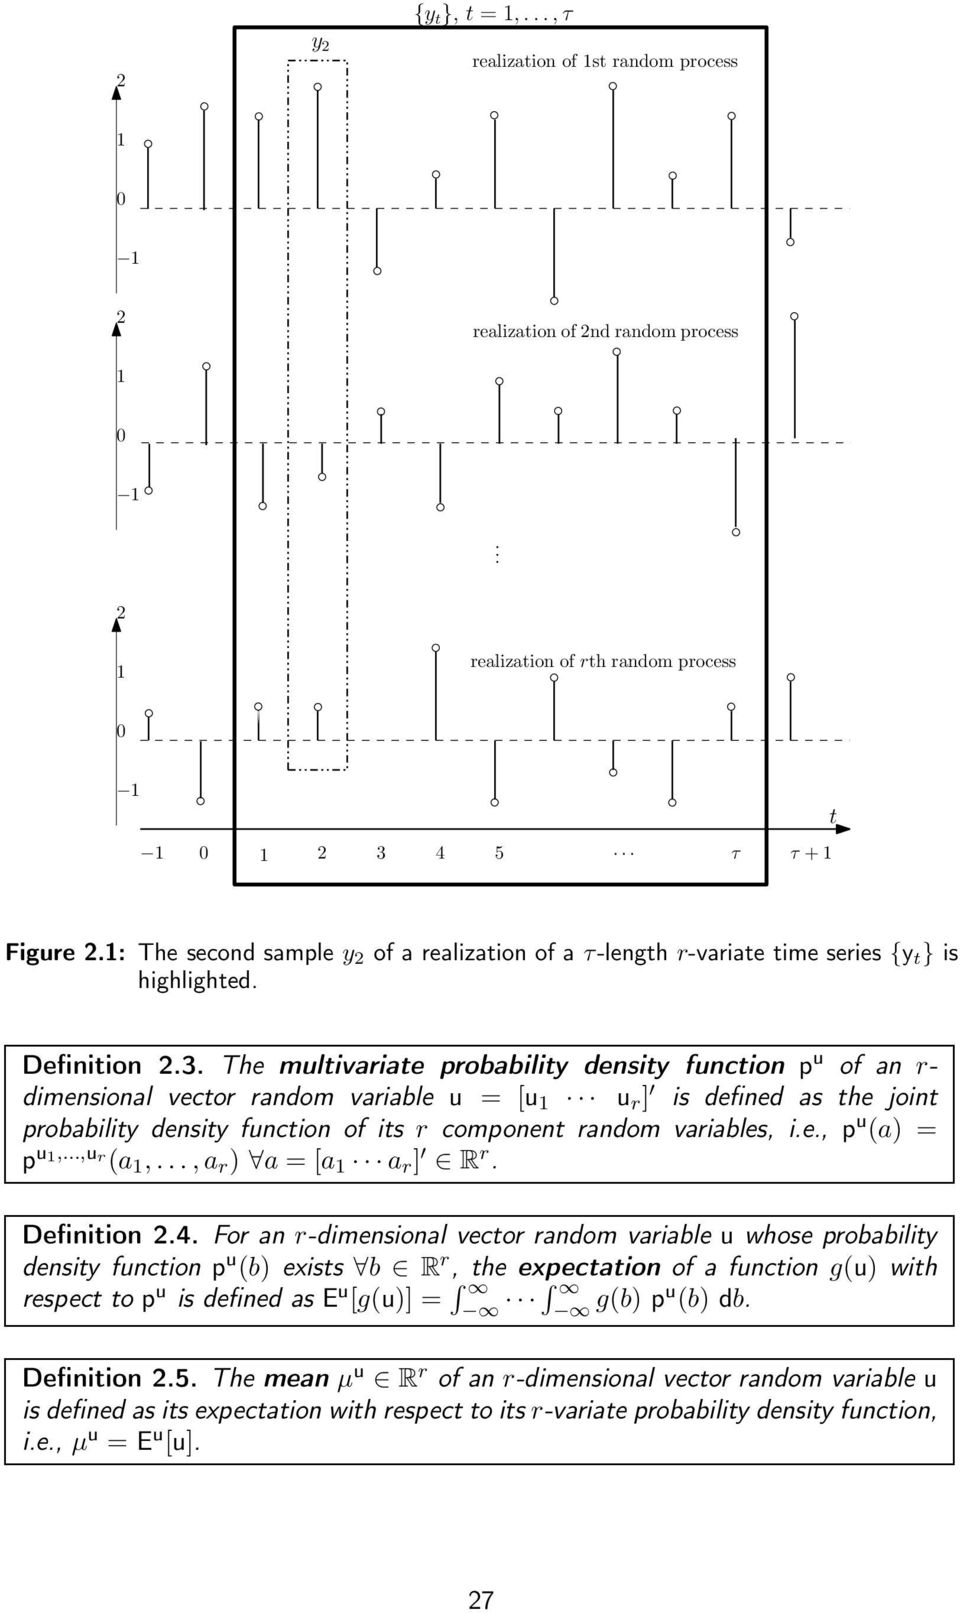 Te multivariate probability density function p u of an r- dimensional vector random variable u = [u 1 u r ] is defined as te joint probability density function of its r component random variables, i.